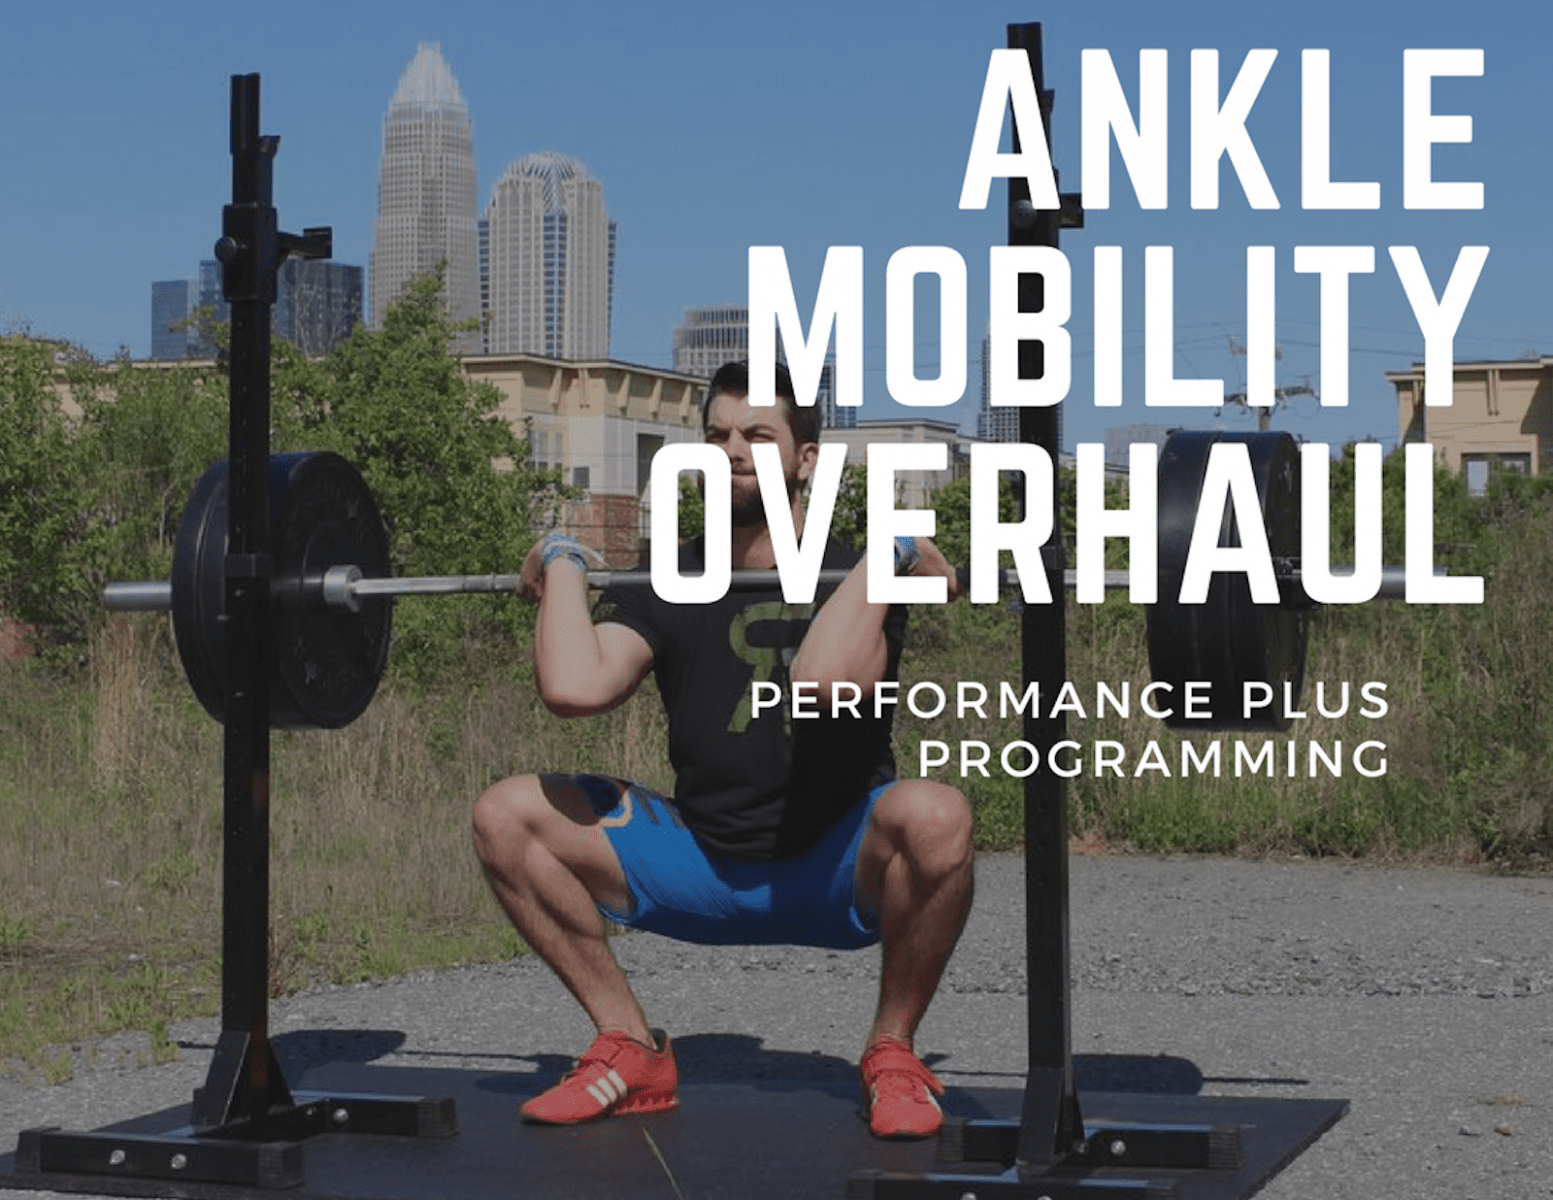 ankle mobility overhaul